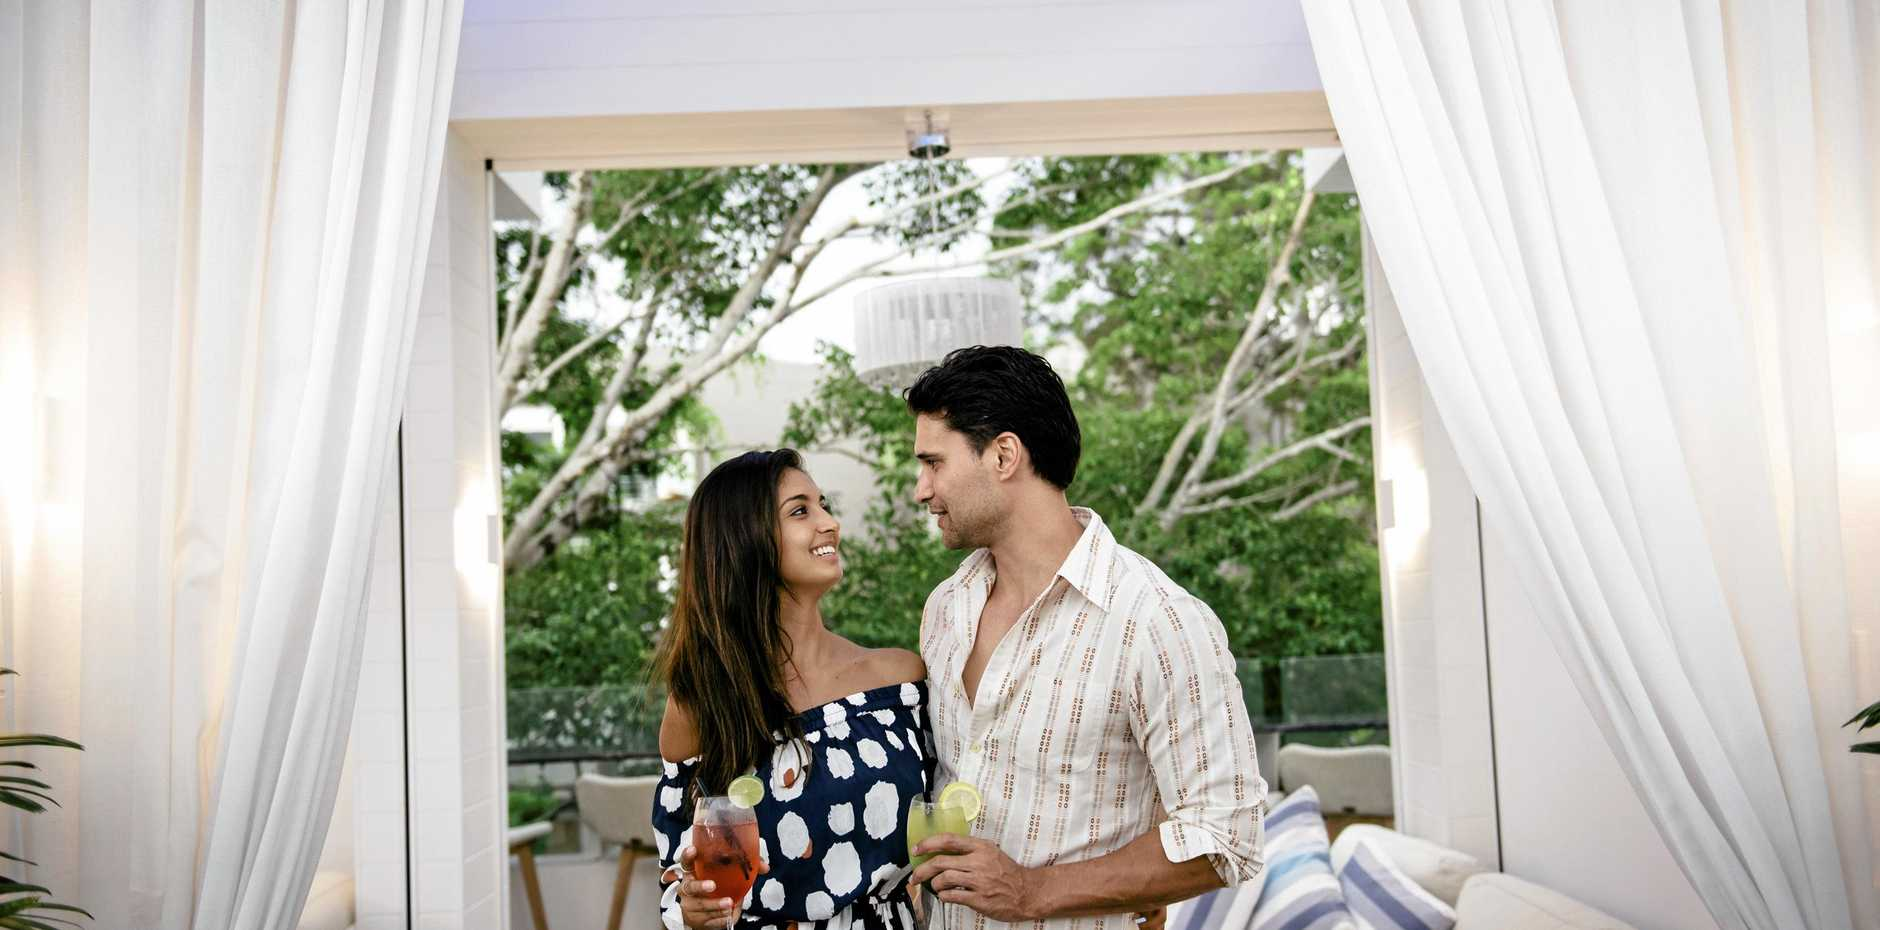 ROMANTIC: Softiel Noosa will hold an exclusive night under the stars this Valentine's Day.